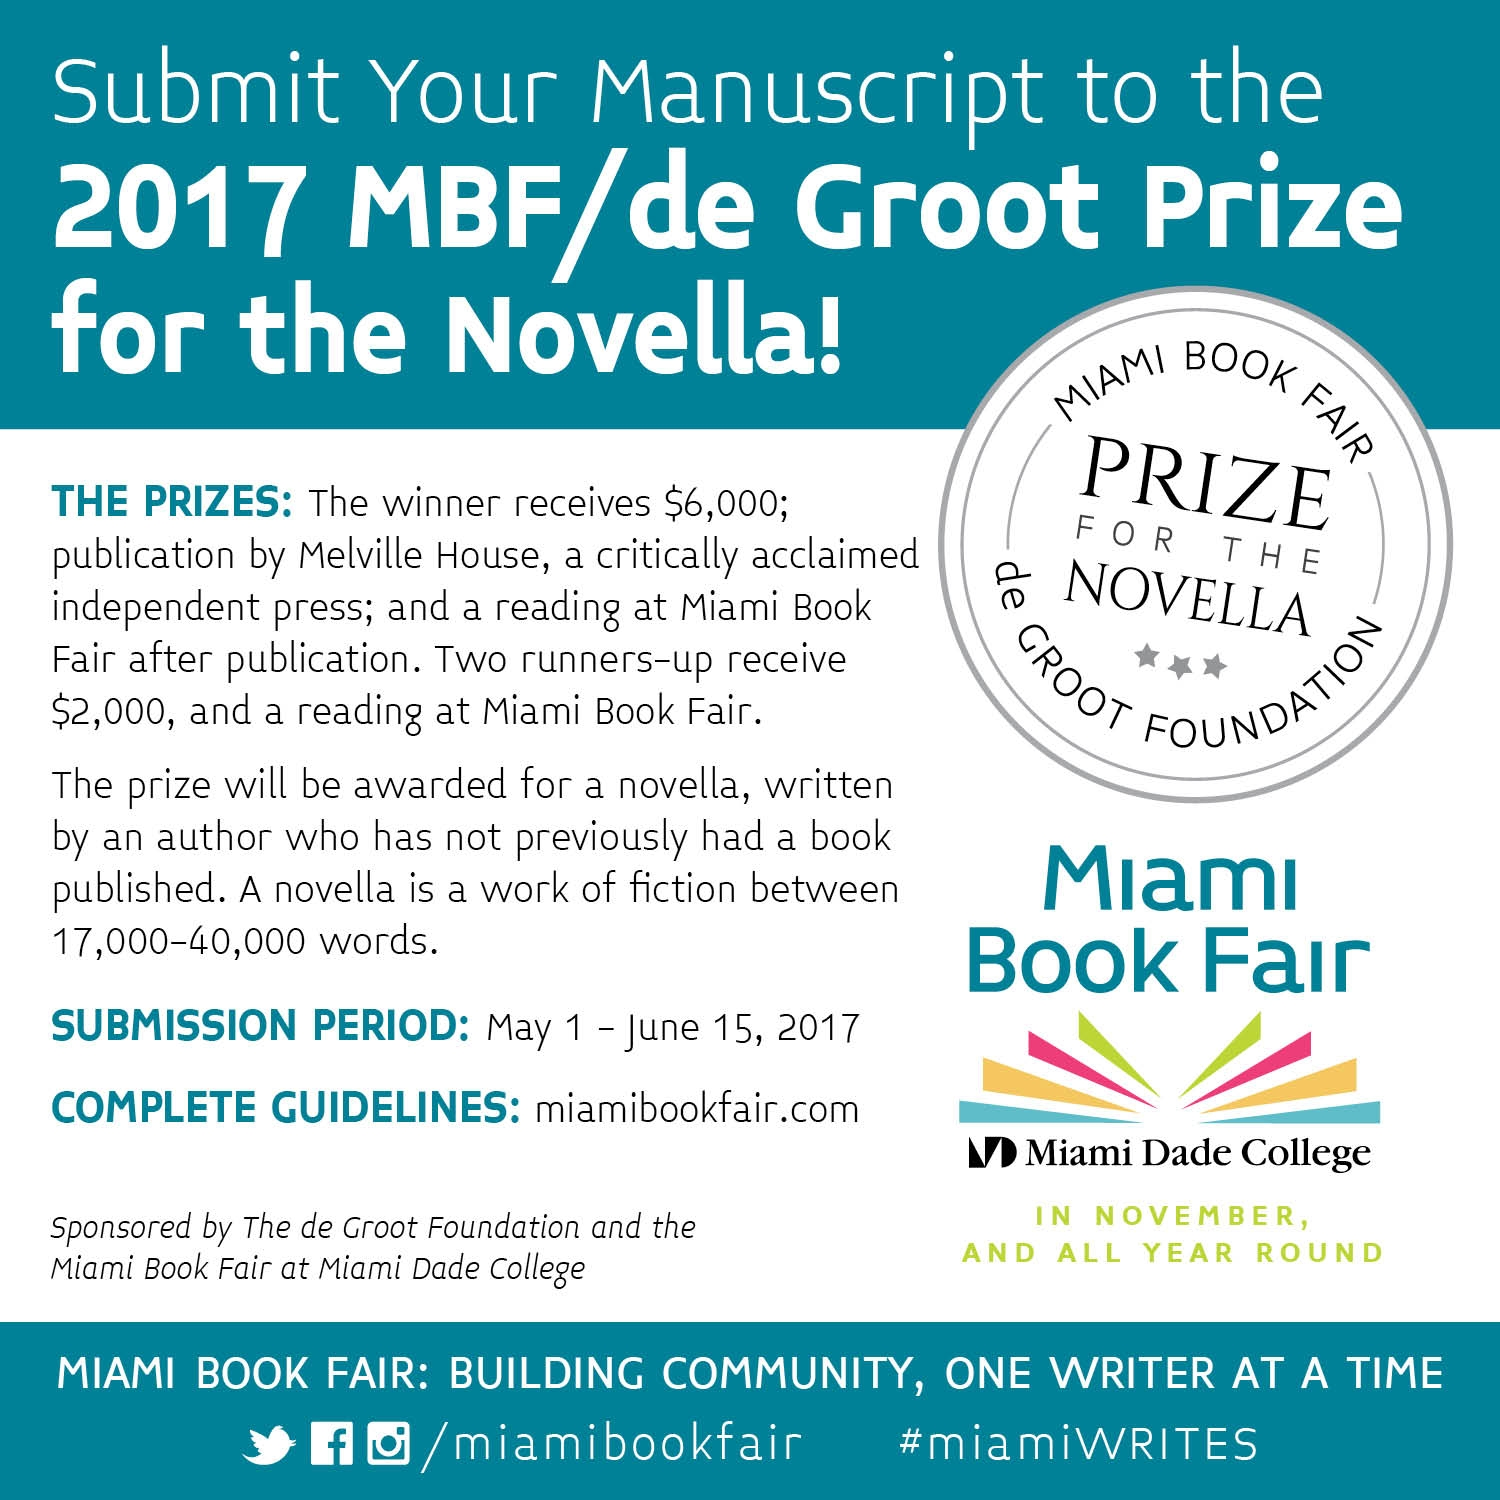 Jan Becker, Author Of The Sunshine Chronicles And Media Publicist For The  Miami Book Fair, Sent Us The: